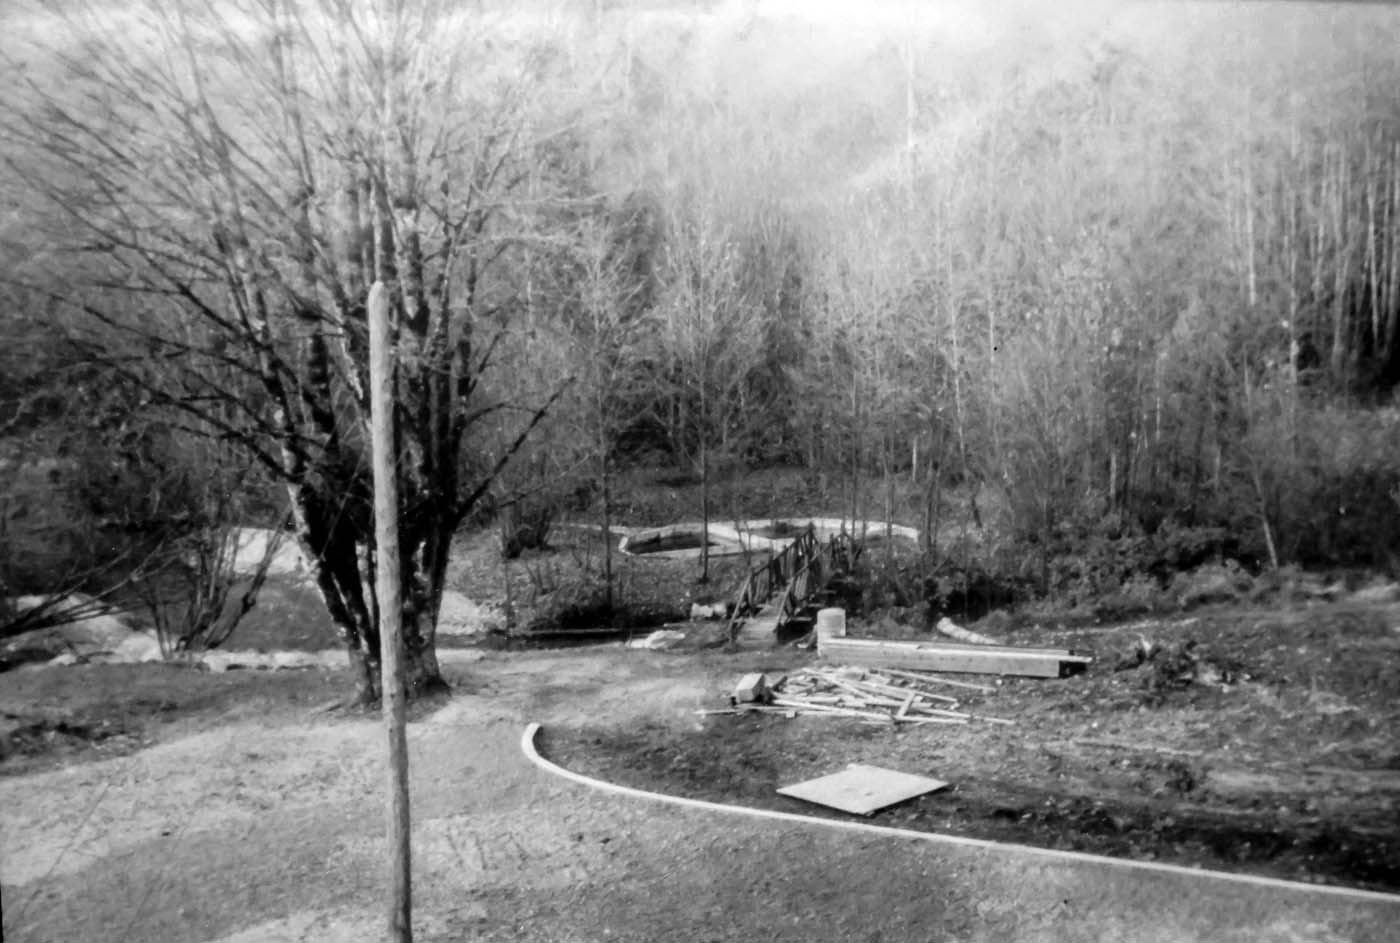 The area before the Hoy Creek Hatchery was built on the old Frederick Brewer property in Coquitlam